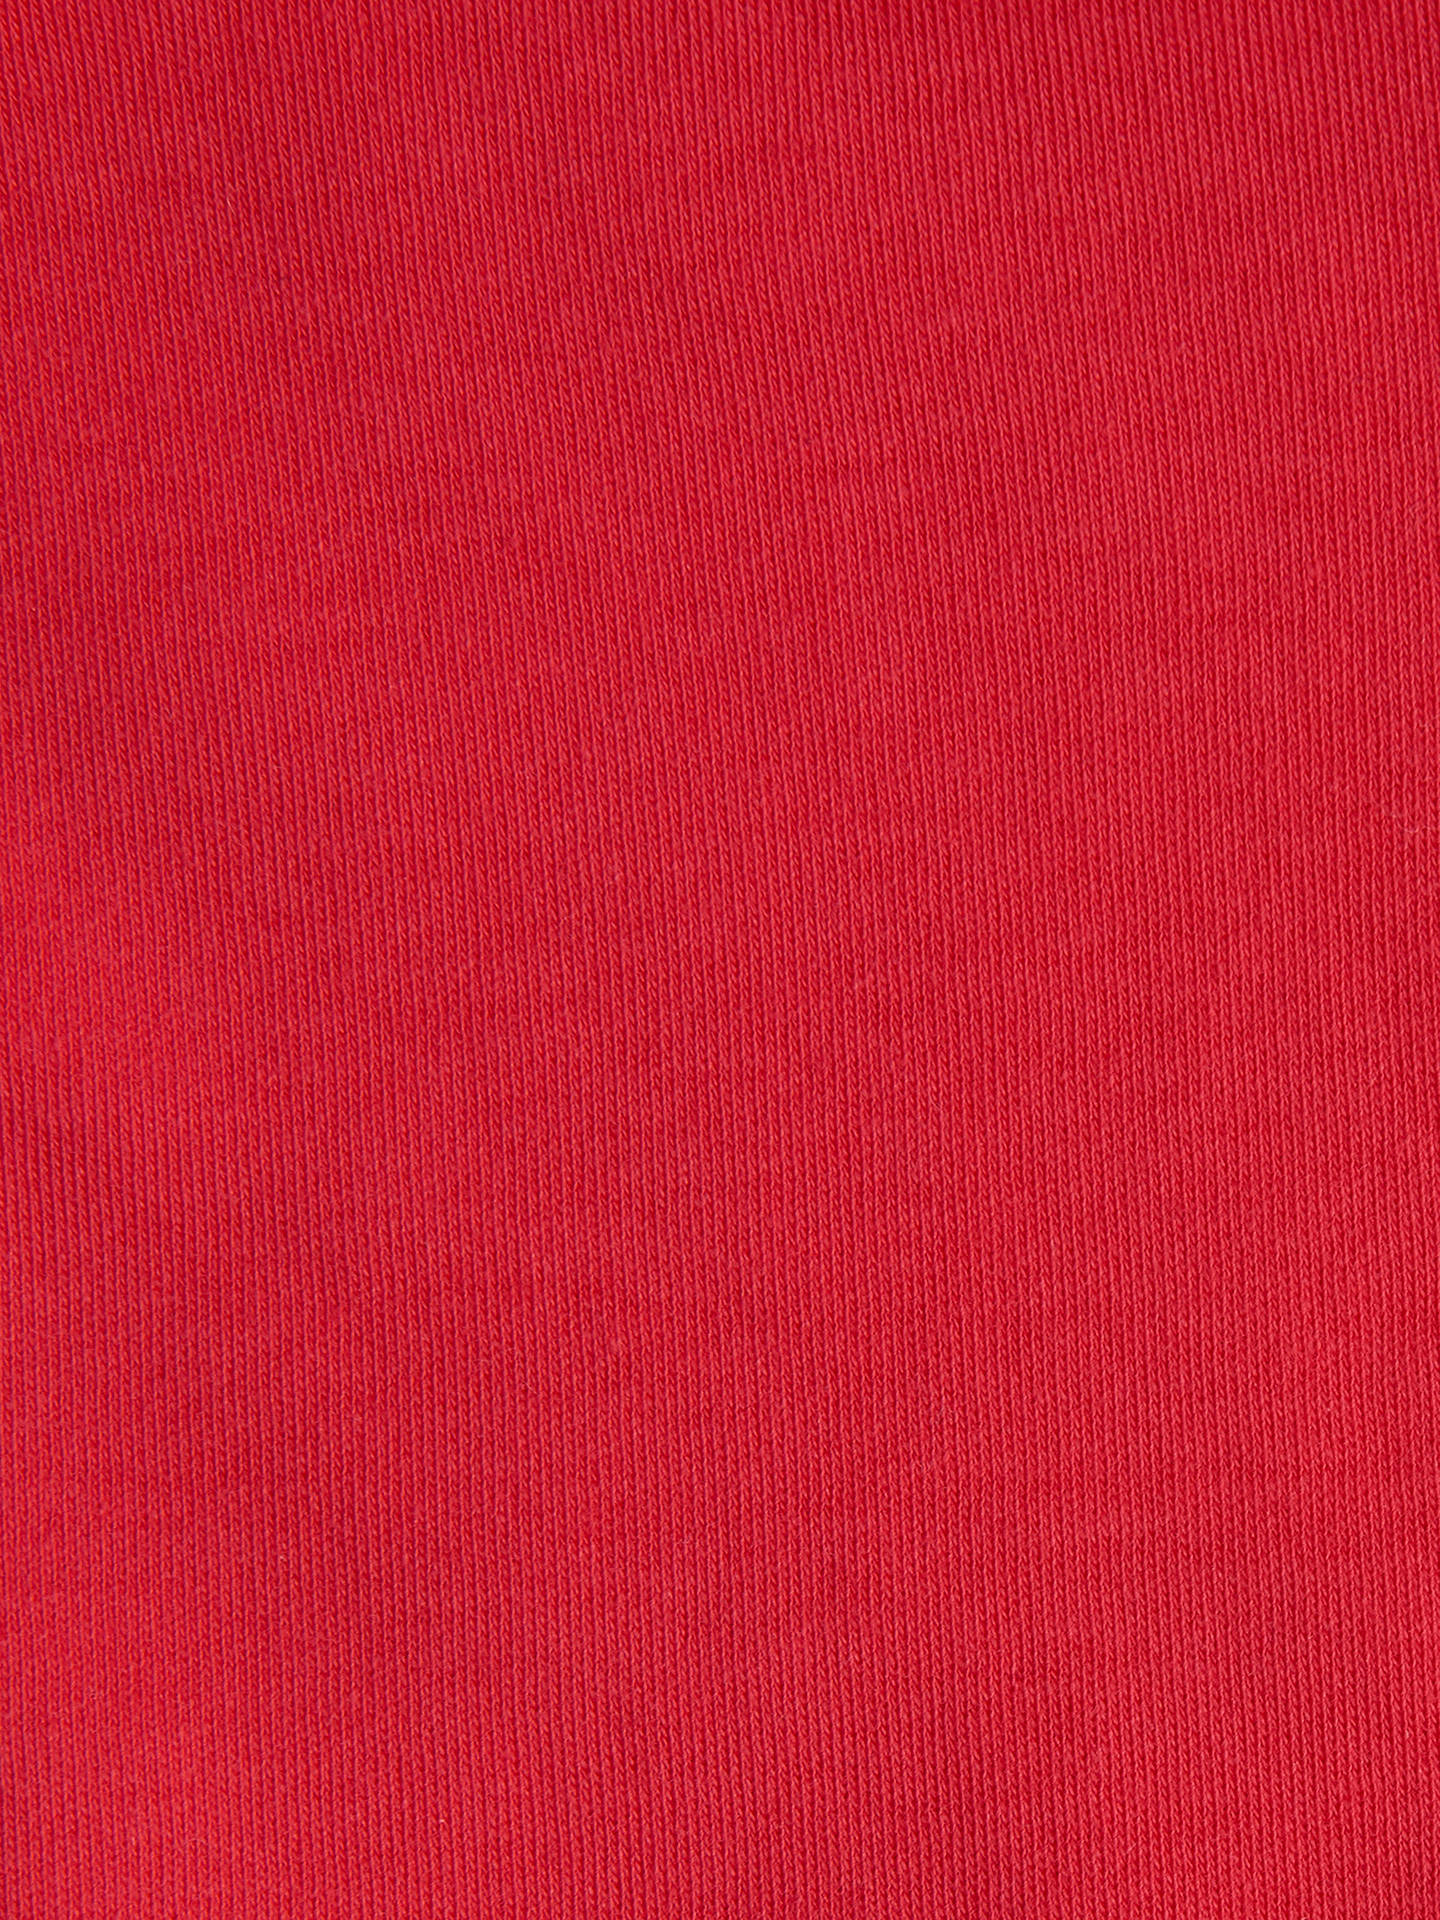 BuyBaby Joule Caro Trousers, Red, 0-3 months Online at johnlewis.com